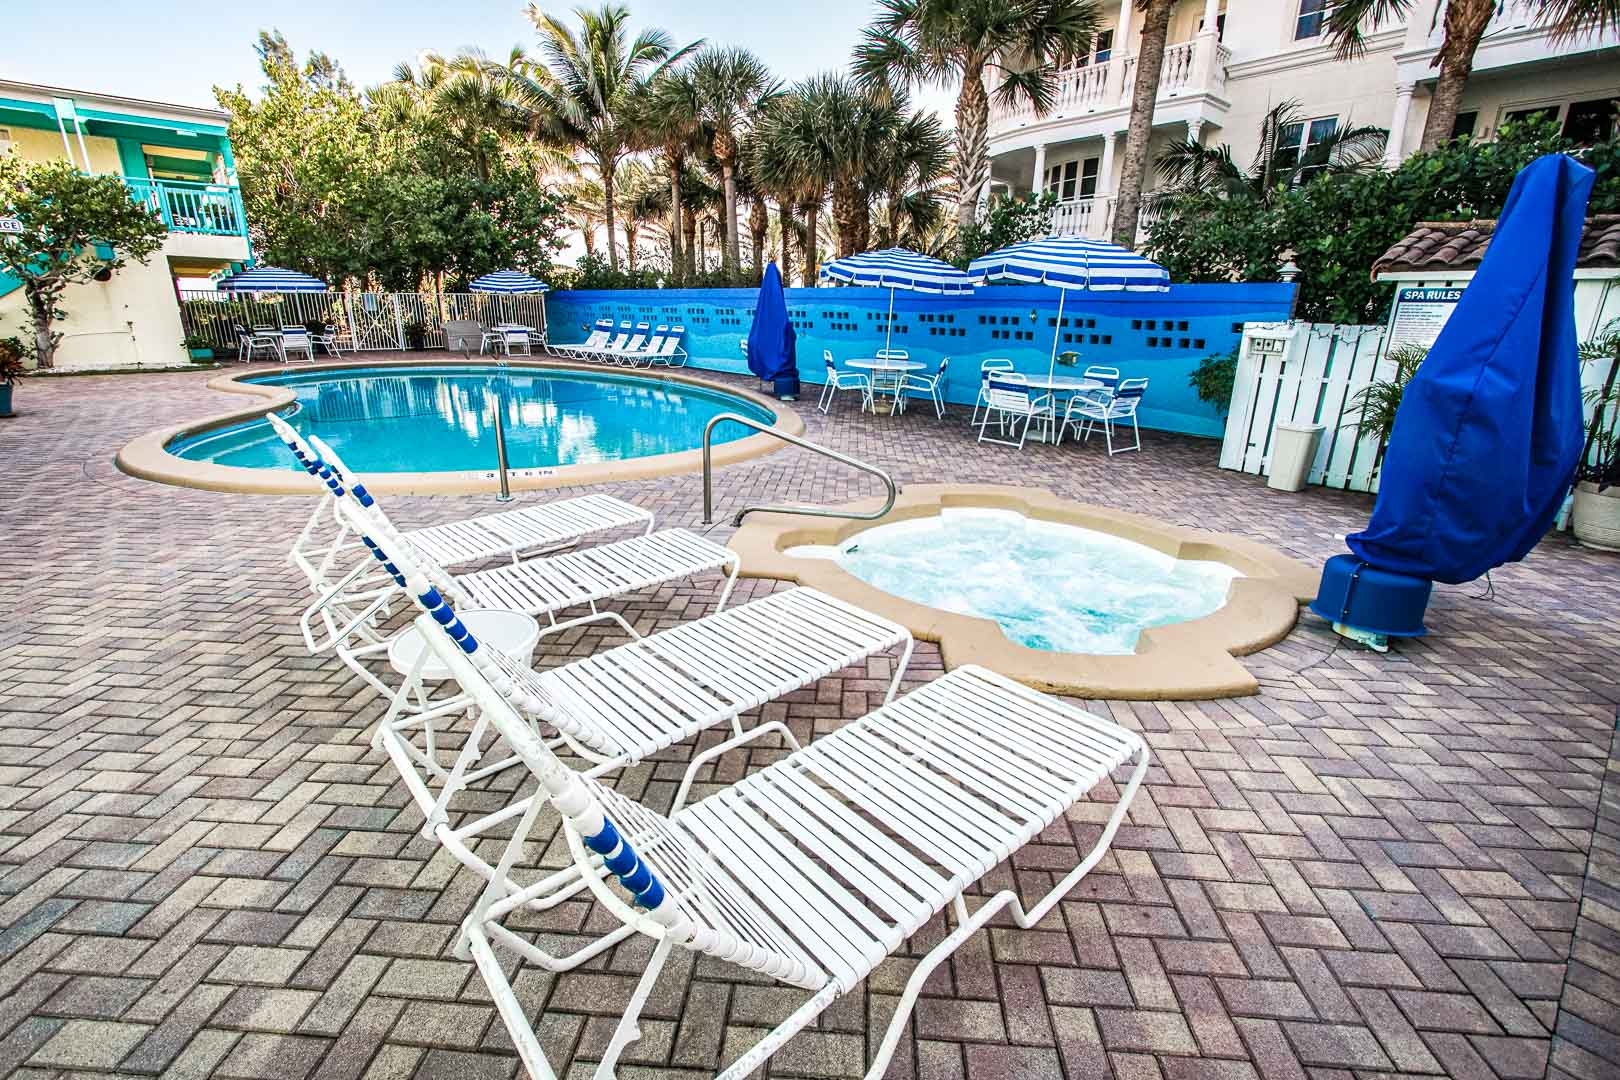 A relaxing outdoor swimming pool at VRI's Sand Dune Shores in Florida.